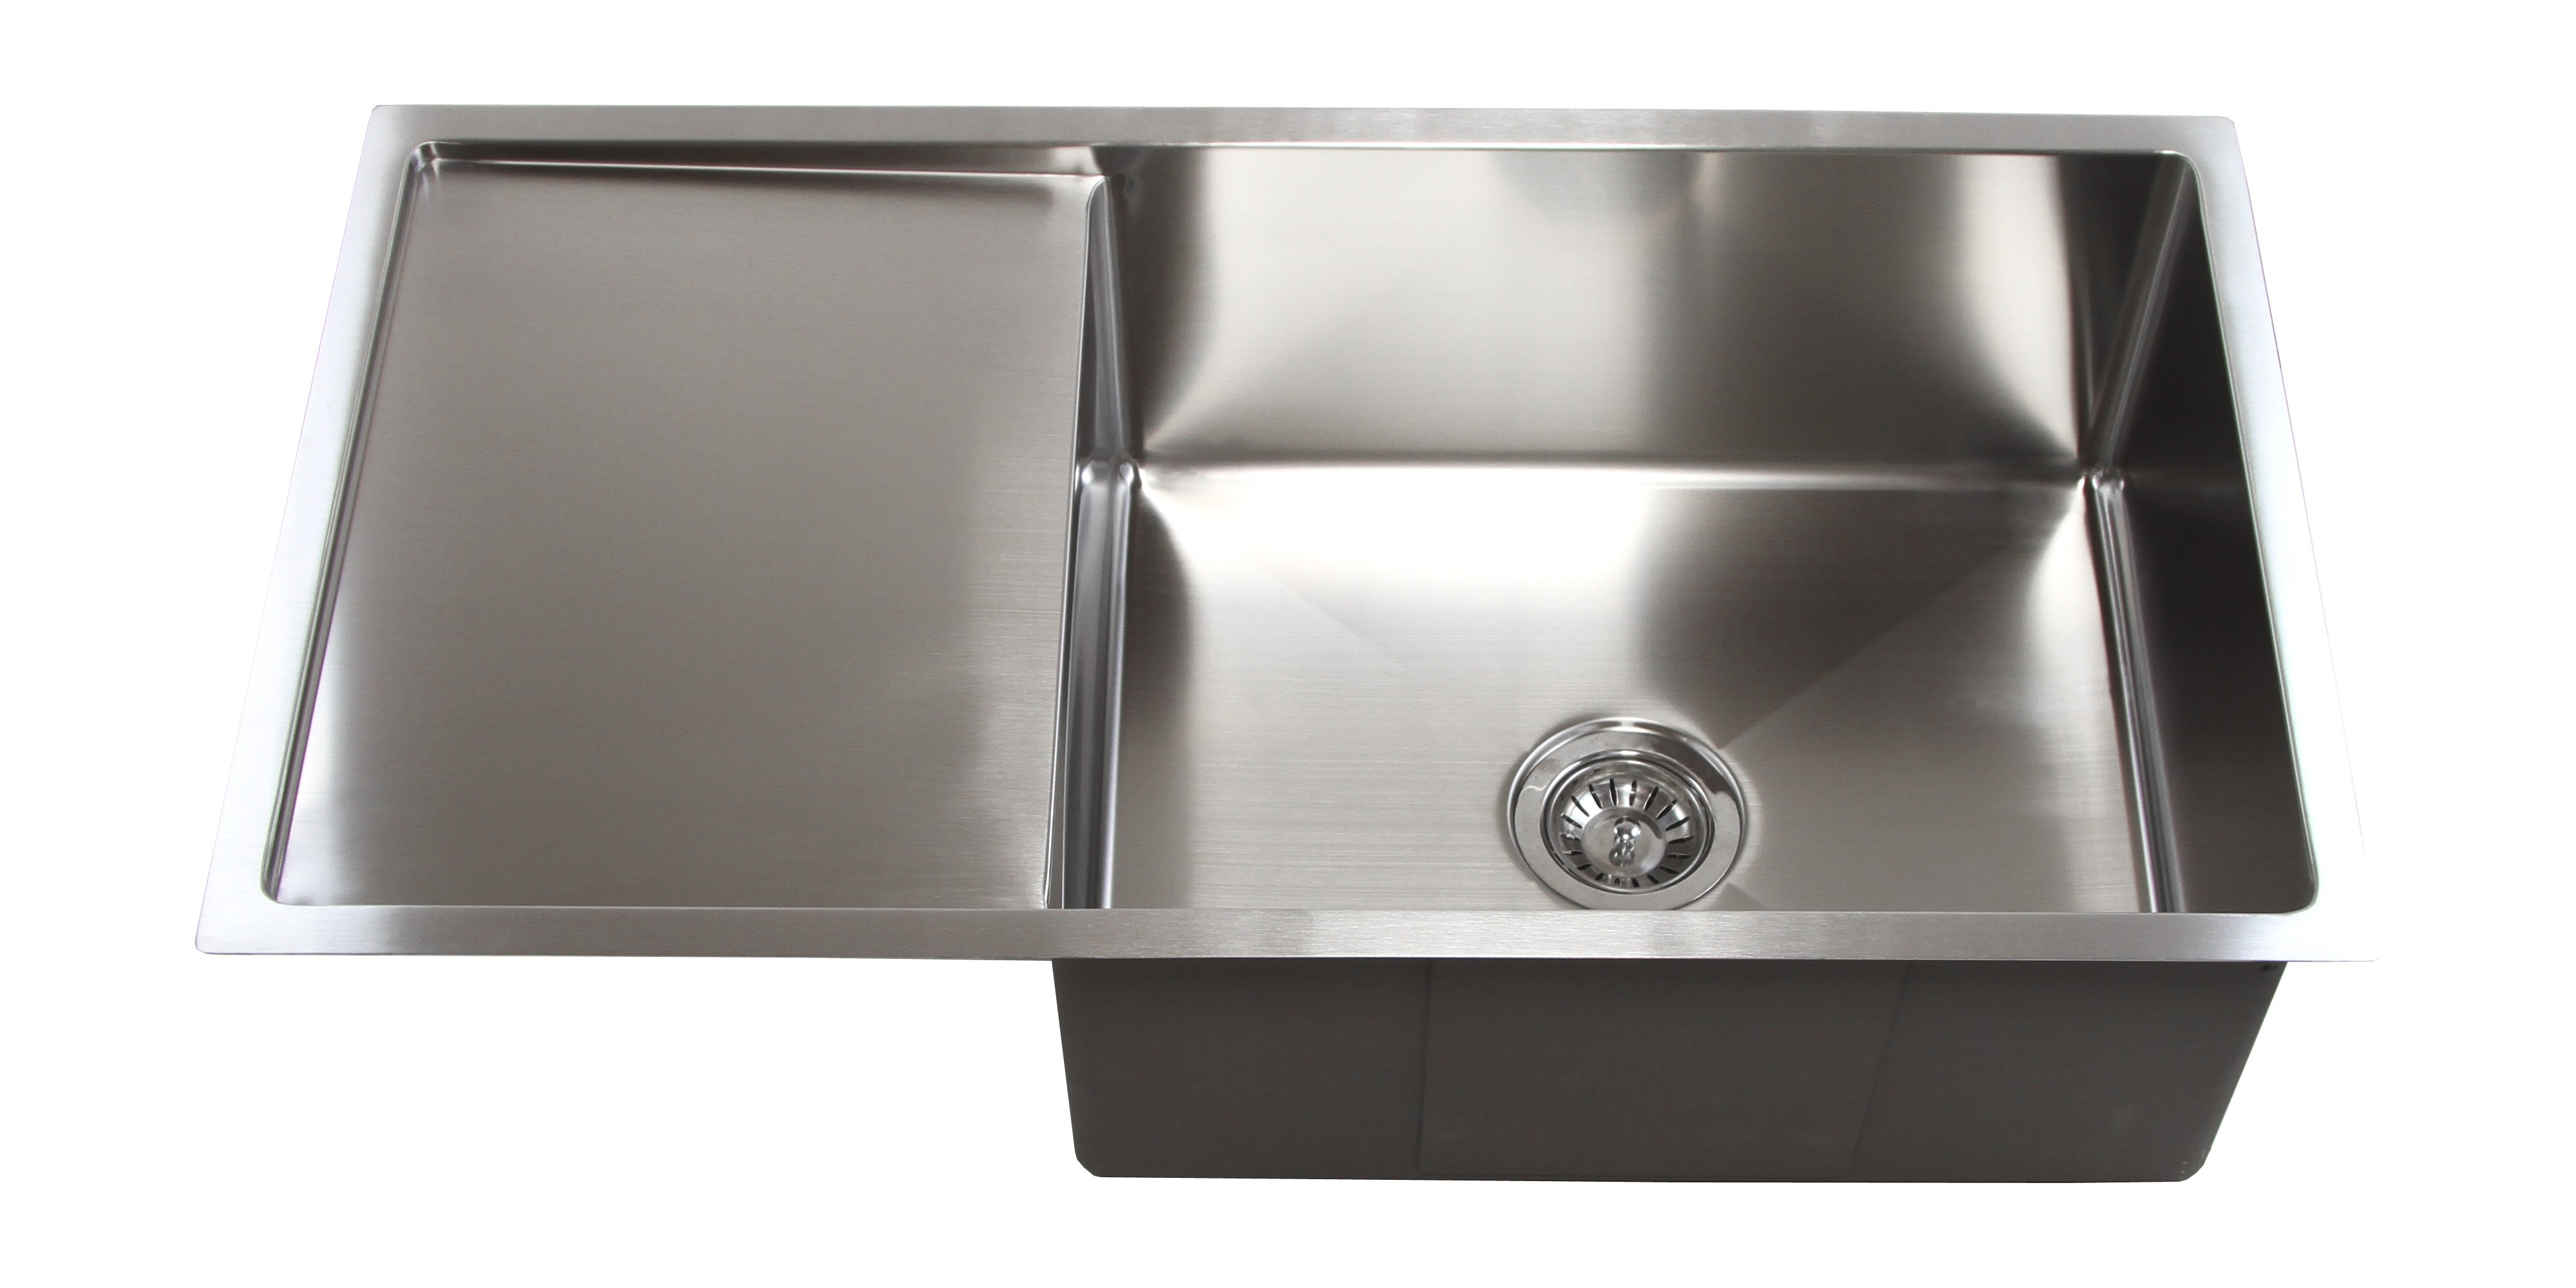 36 inch kitchen sink trash can stainless steel undermount single bowl 15mm radius design with 13 drain board